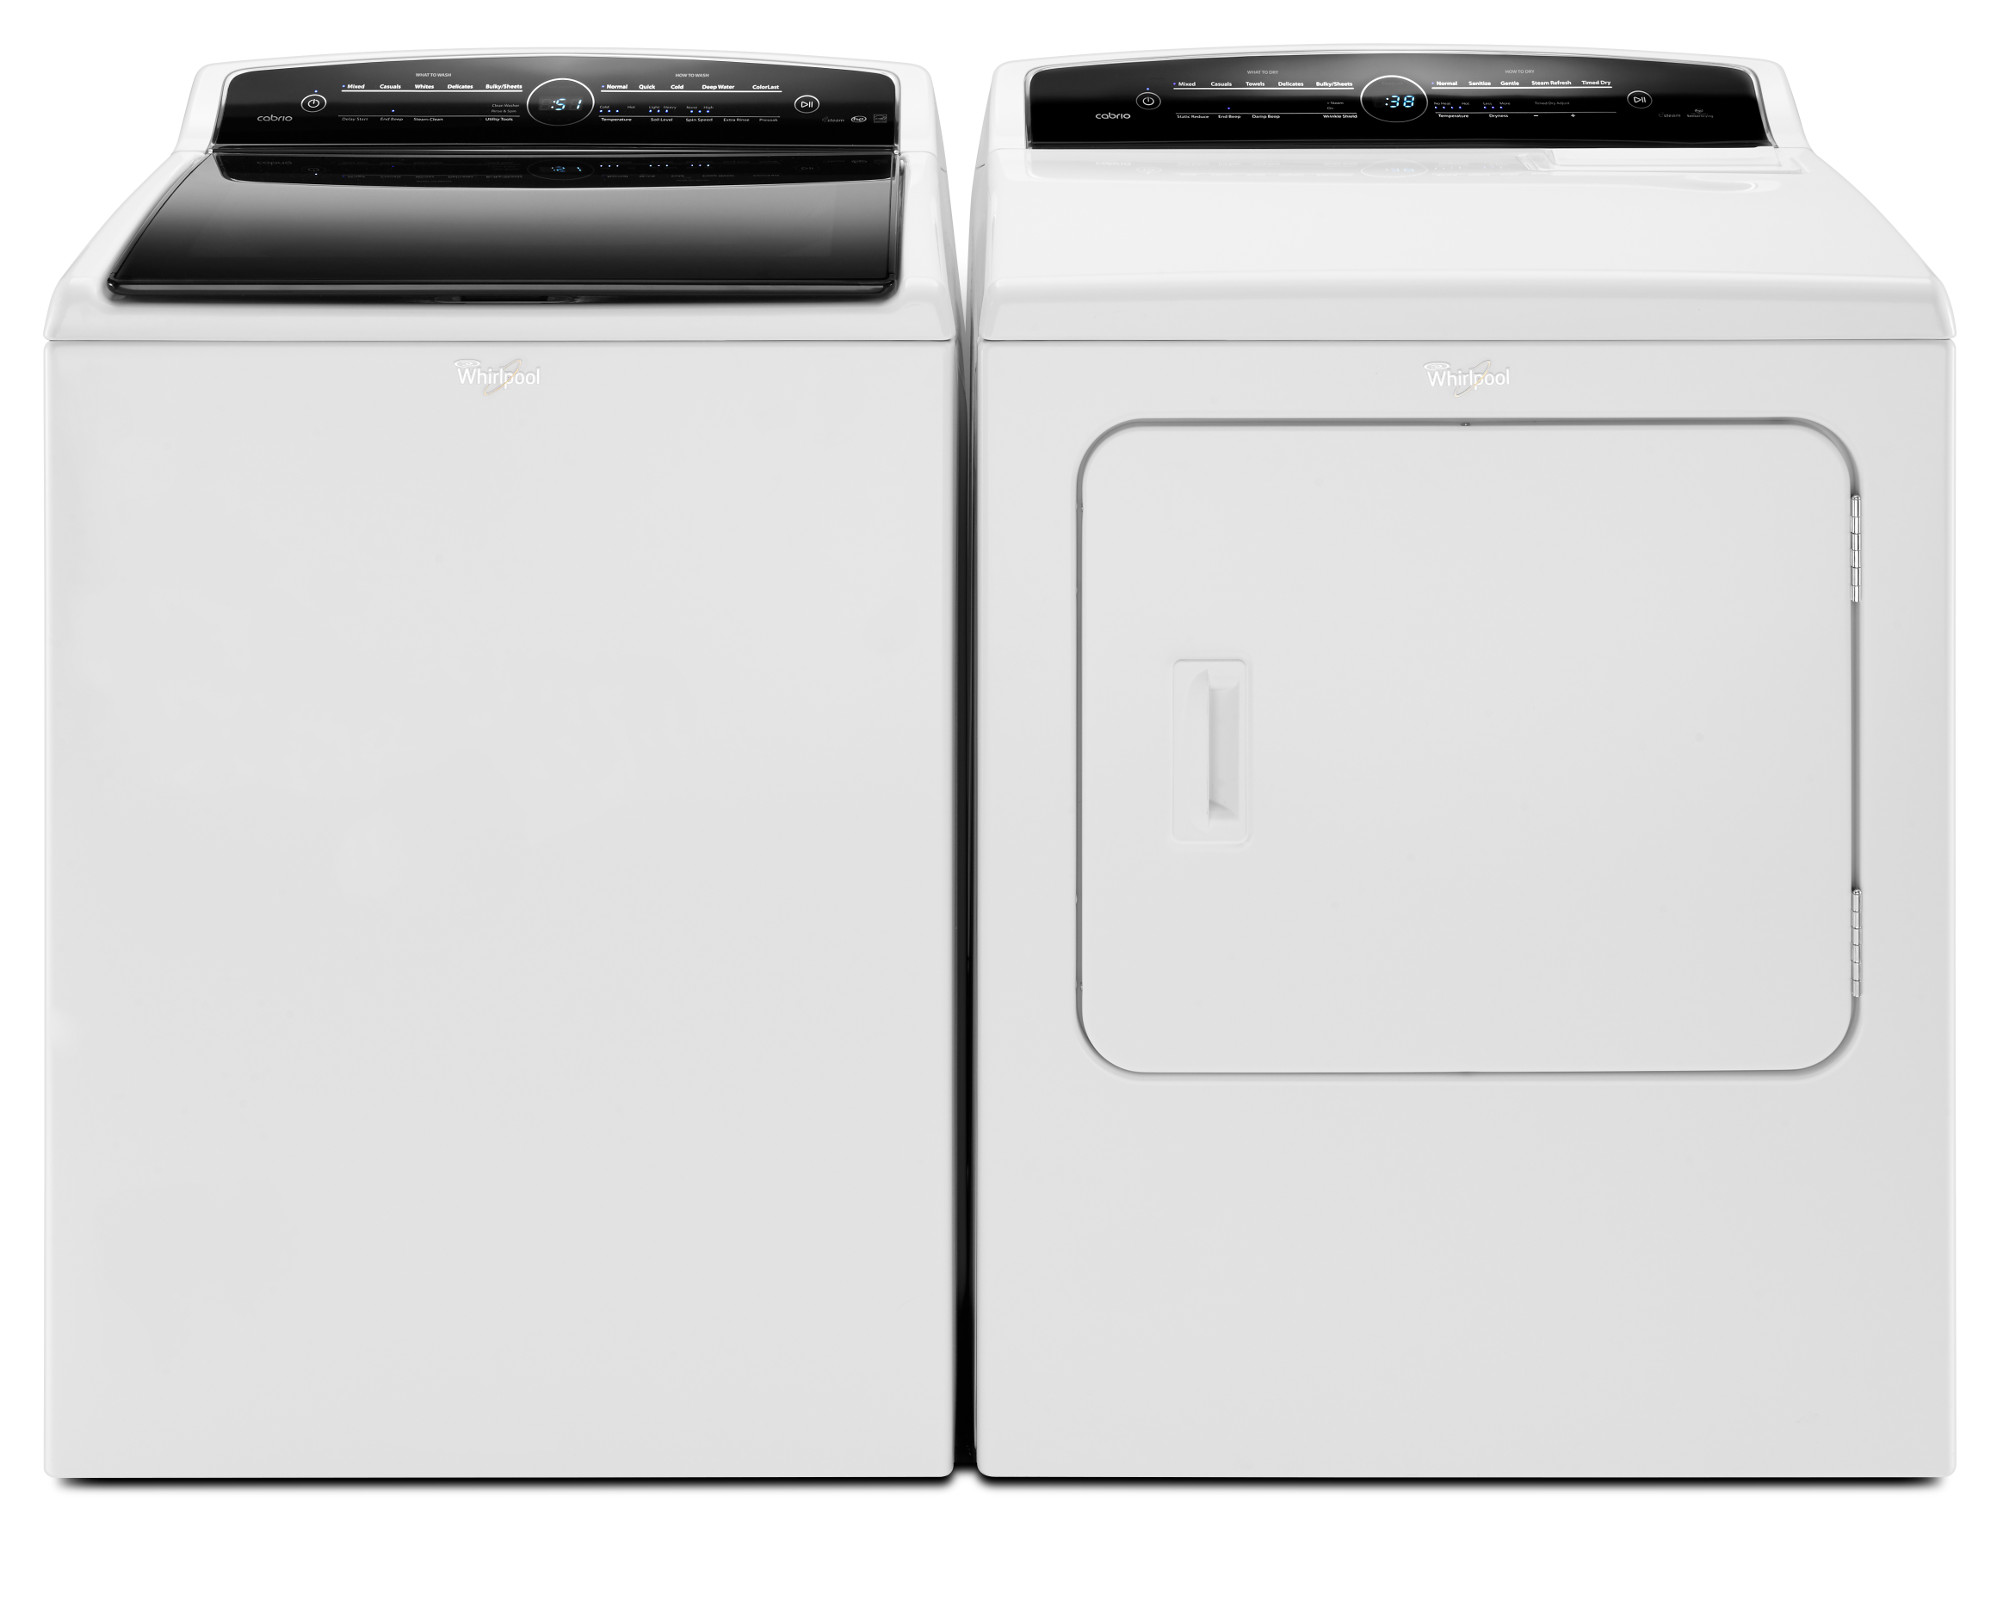 Whirlpool WED7300DW 7.0 cu. ft. Cabrio® Electric Dryer - White